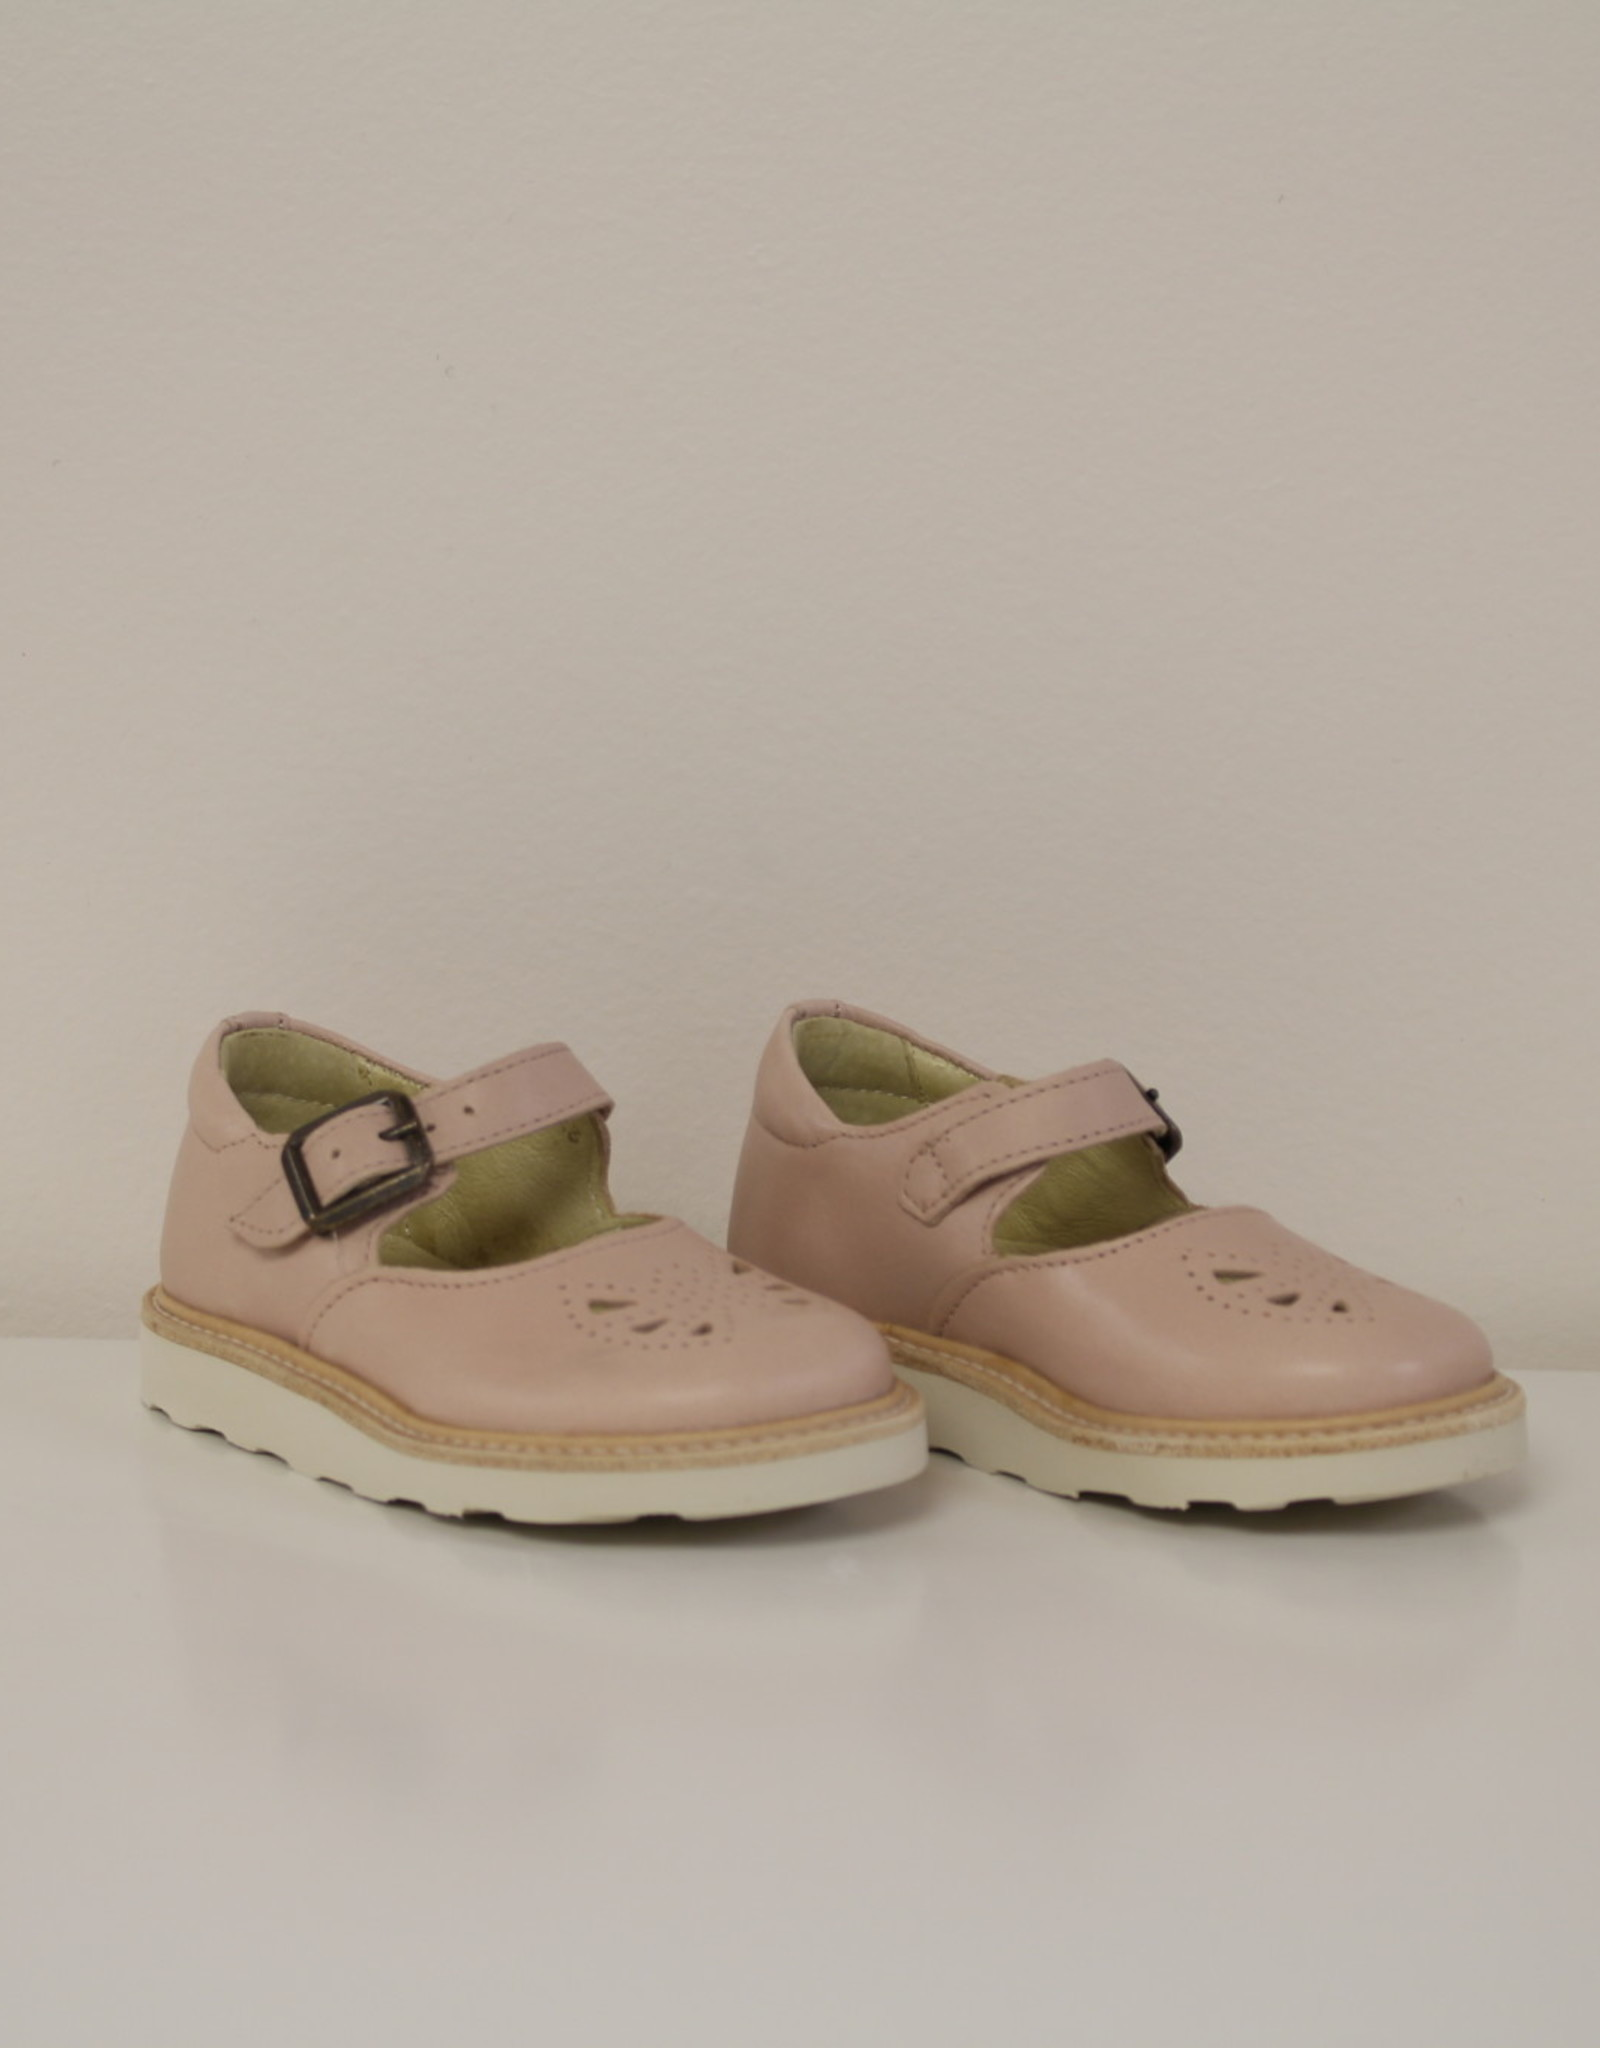 Young Soles Mary Jane shoe eva sole nude pink